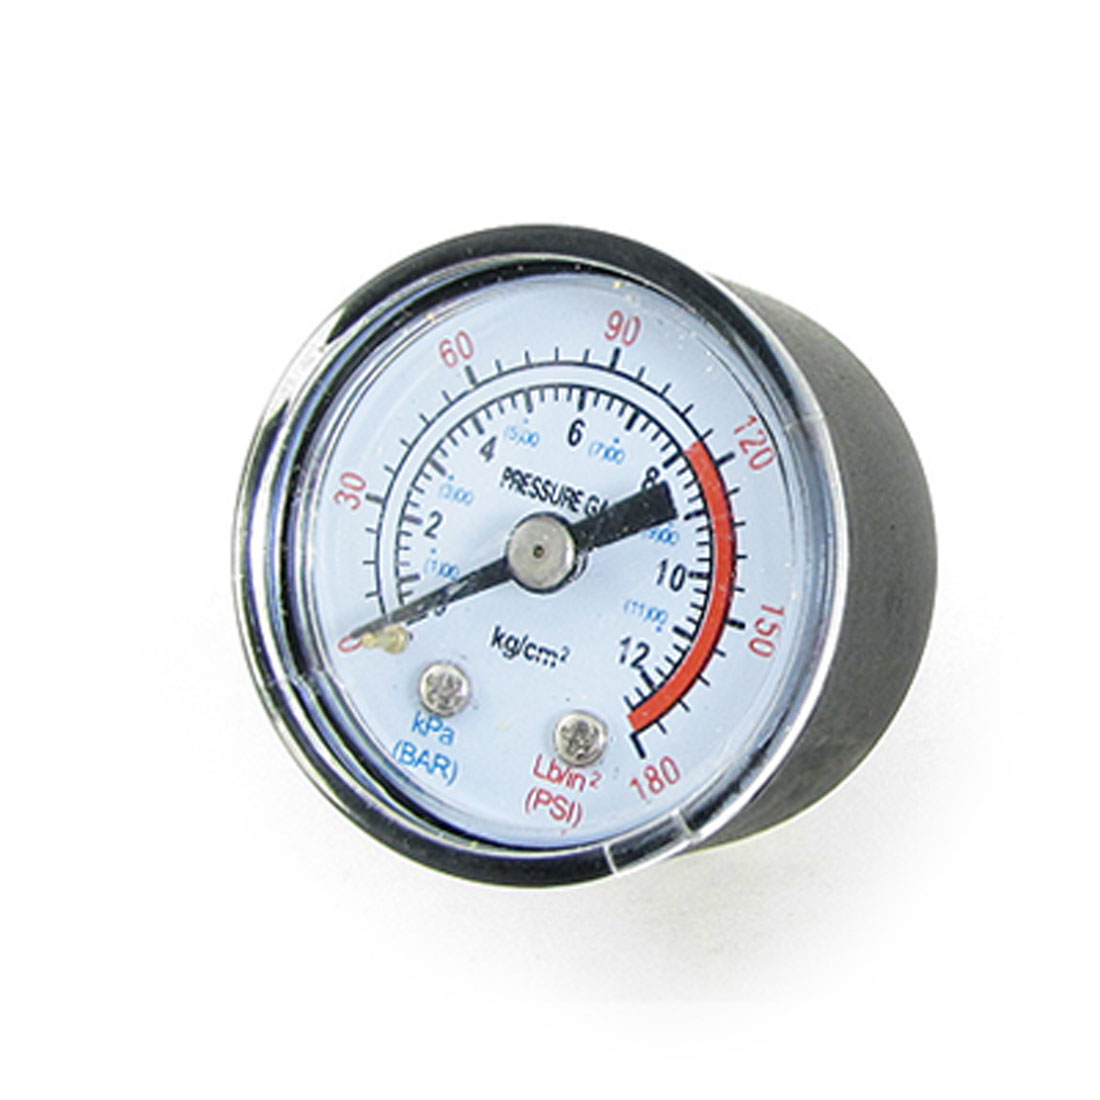 "Air Compressor 0-180 PSI 9/25"" Threaded Dial Pressure Gauge"